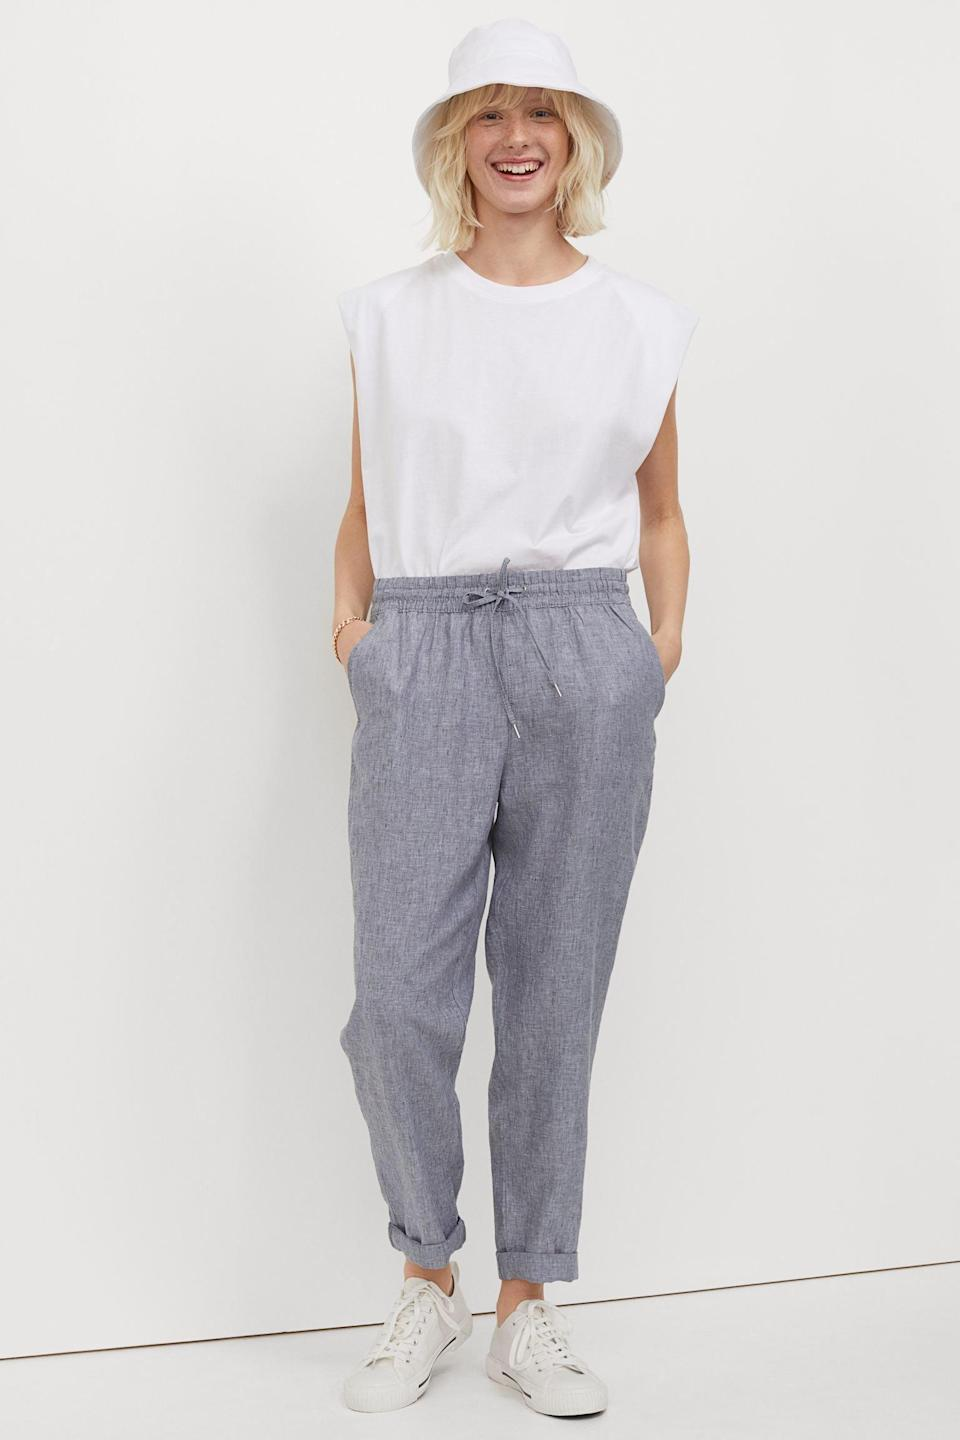 """<h2>H&M Linen Joggers</h2><br>As the saying goes, if it ain't broke, don't fix it. Just because we live in our cotton sweats at home doesn't mean we can't find a more suitable alternative for our travel excursions. Consider a pair of linen joggers. The breathable fabric leaves you comfortable everywhere, and is chic enough to wear throughout your vacation (especially if it's a trip near the beach).<br><br><em>Shop <strong><a href=""""https://www2.hm.com/en_us/index.html"""" rel=""""nofollow noopener"""" target=""""_blank"""" data-ylk=""""slk:H&M"""" class=""""link rapid-noclick-resp"""">H&M</a></strong></em><br><br><strong>H&M</strong> Linen Joggers, $, available at <a href=""""https://go.skimresources.com/?id=30283X879131&url=https%3A%2F%2Fwww2.hm.com%2Fen_us%2Fproductpage.0954891004.html"""" rel=""""nofollow noopener"""" target=""""_blank"""" data-ylk=""""slk:H&M"""" class=""""link rapid-noclick-resp"""">H&M</a>"""